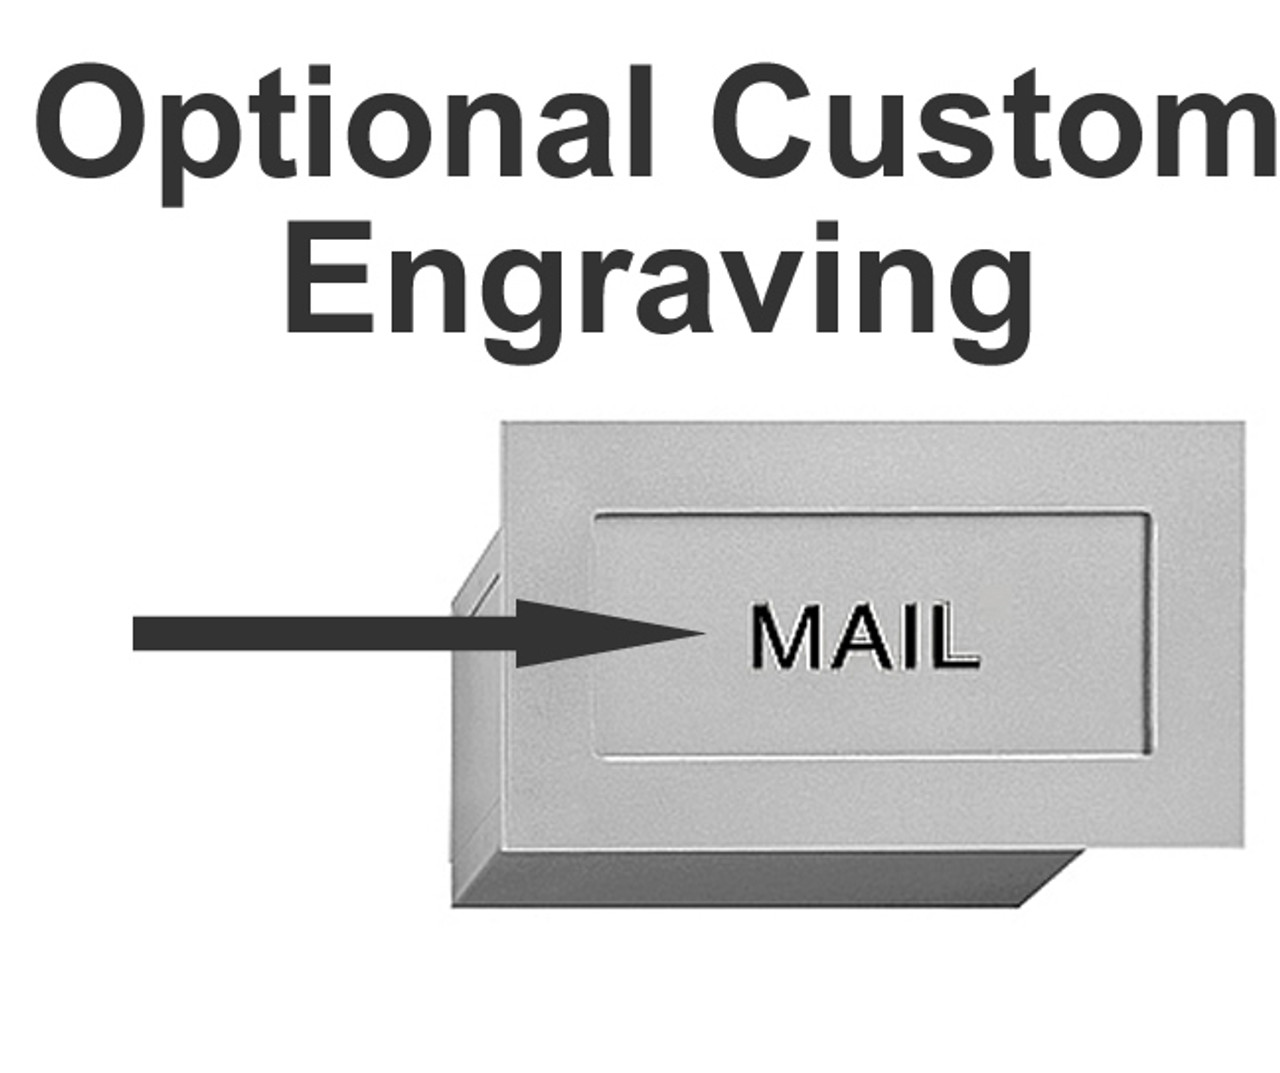 Wall Mail Drop Slot S2255 shown with engraving